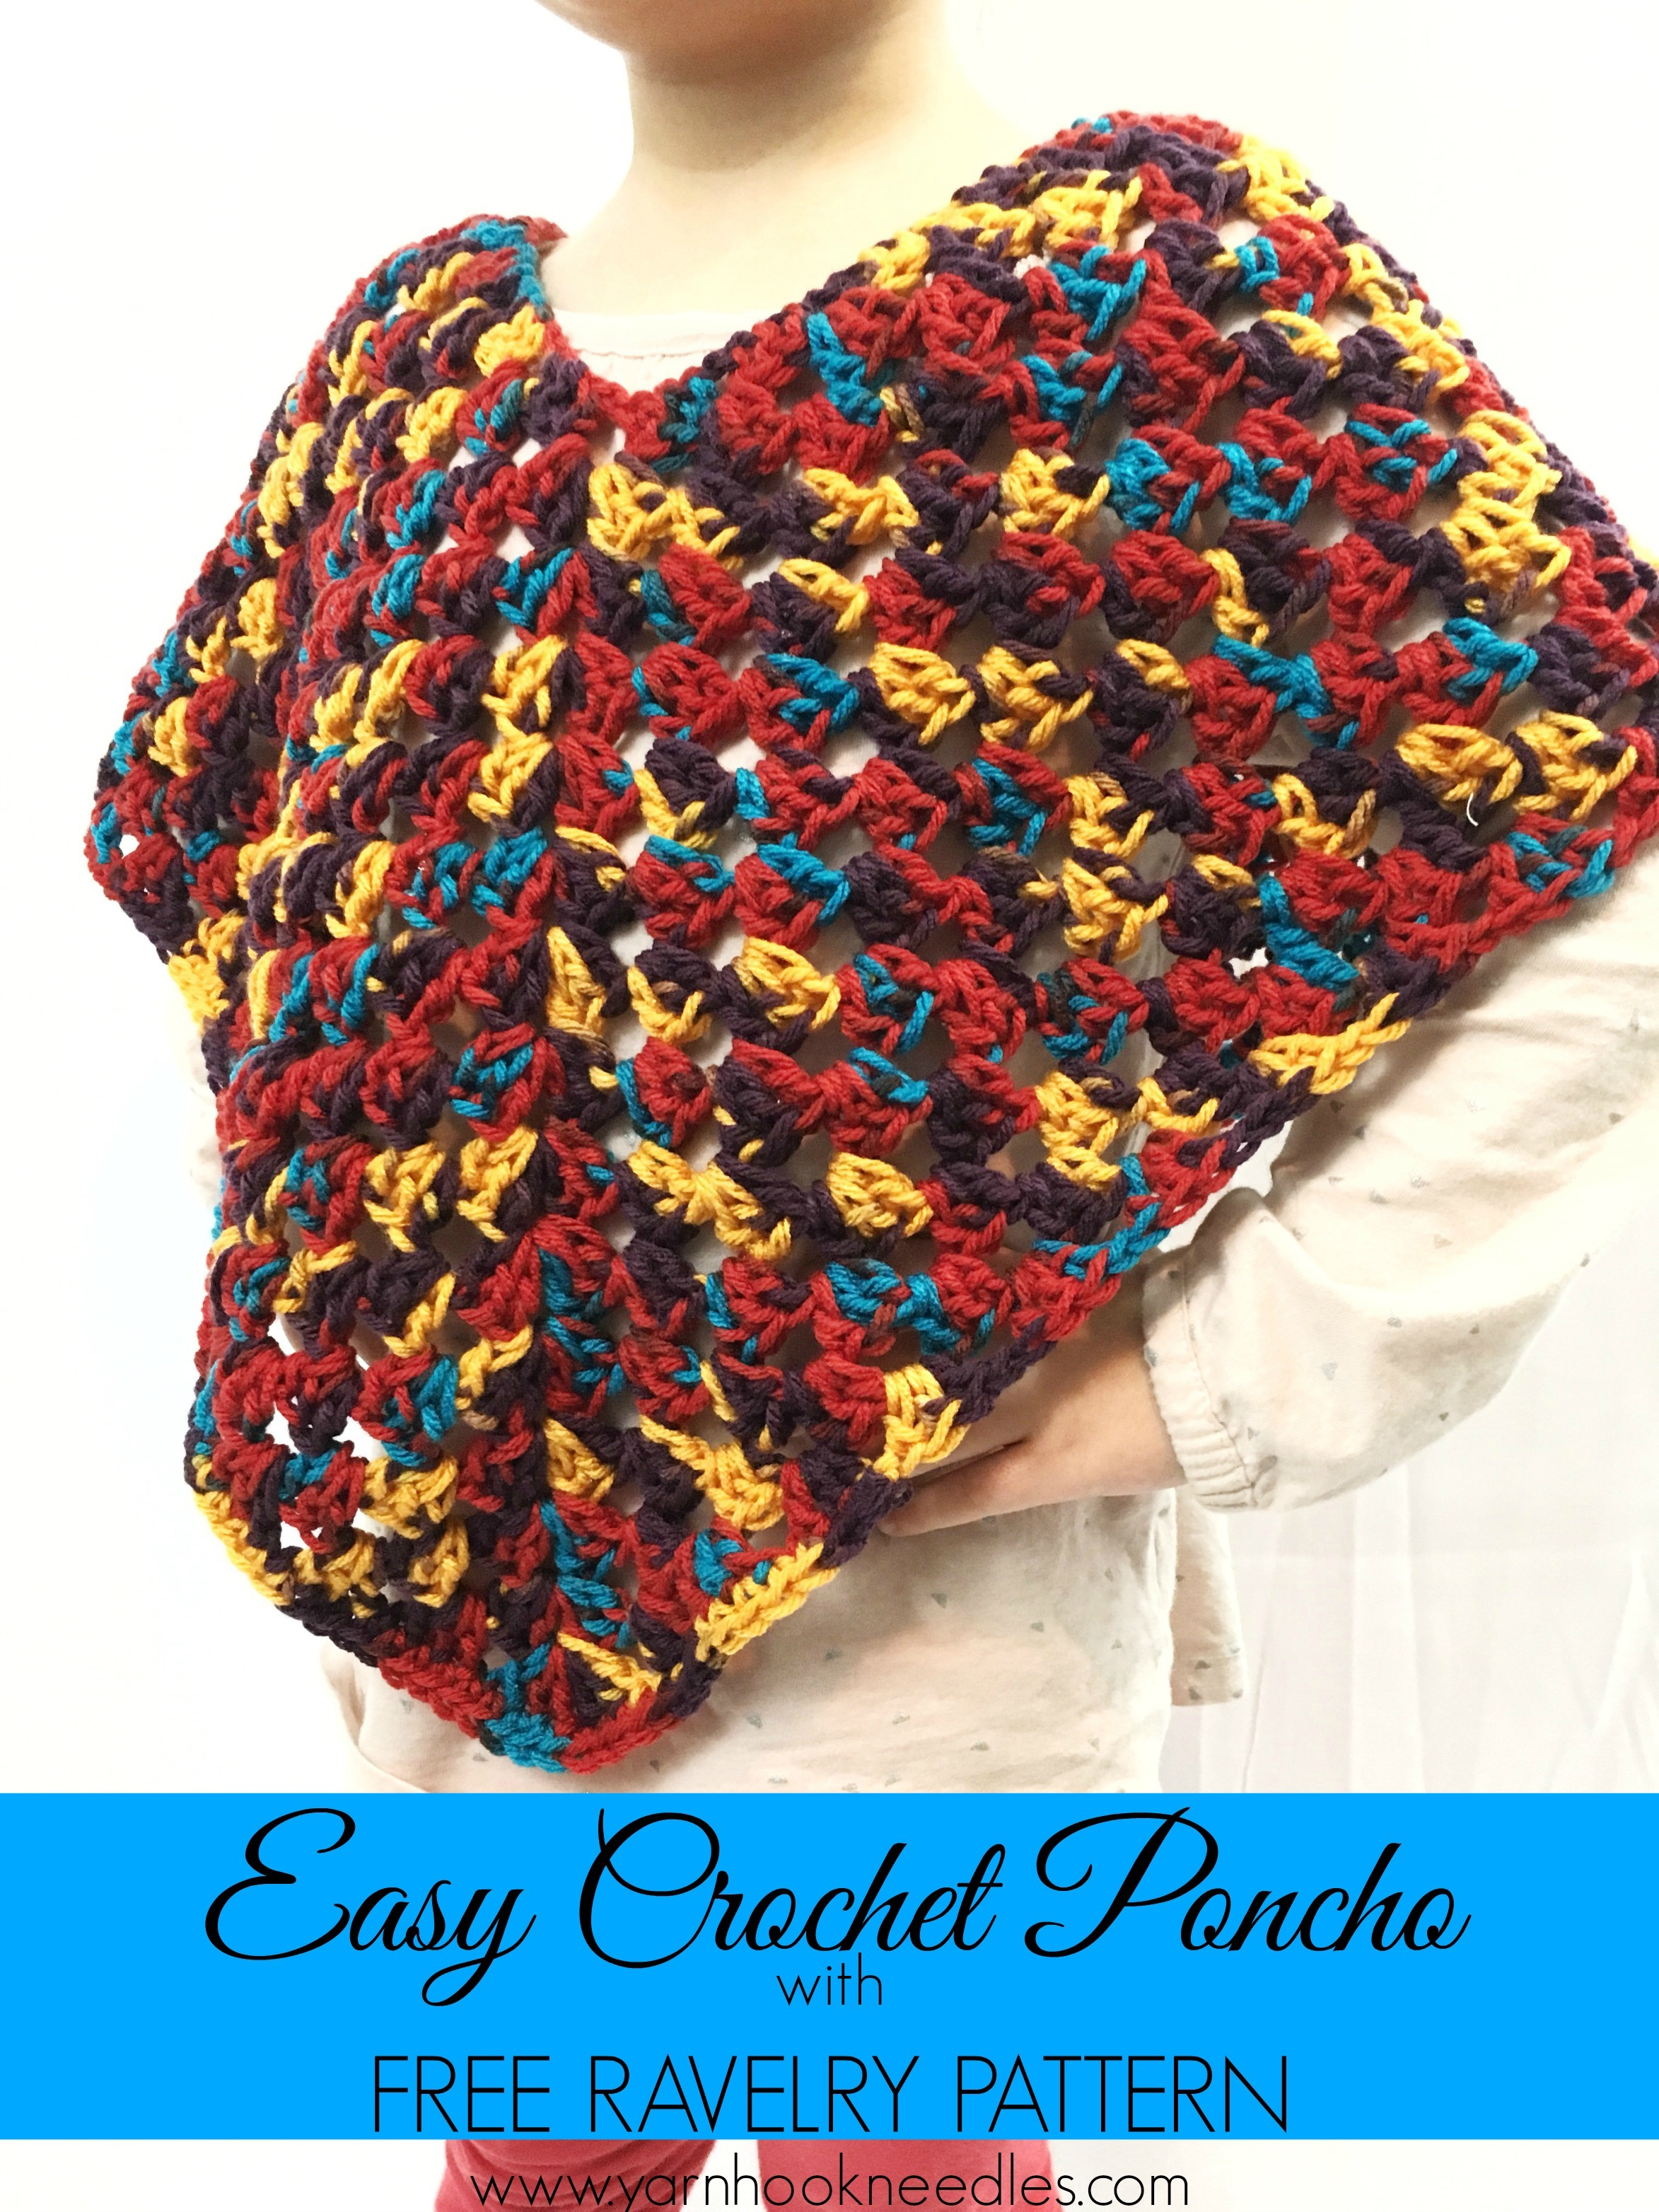 Easy Crochet Poncho with FREE Ravelry Pattern! - Yarn|Hook|Needles